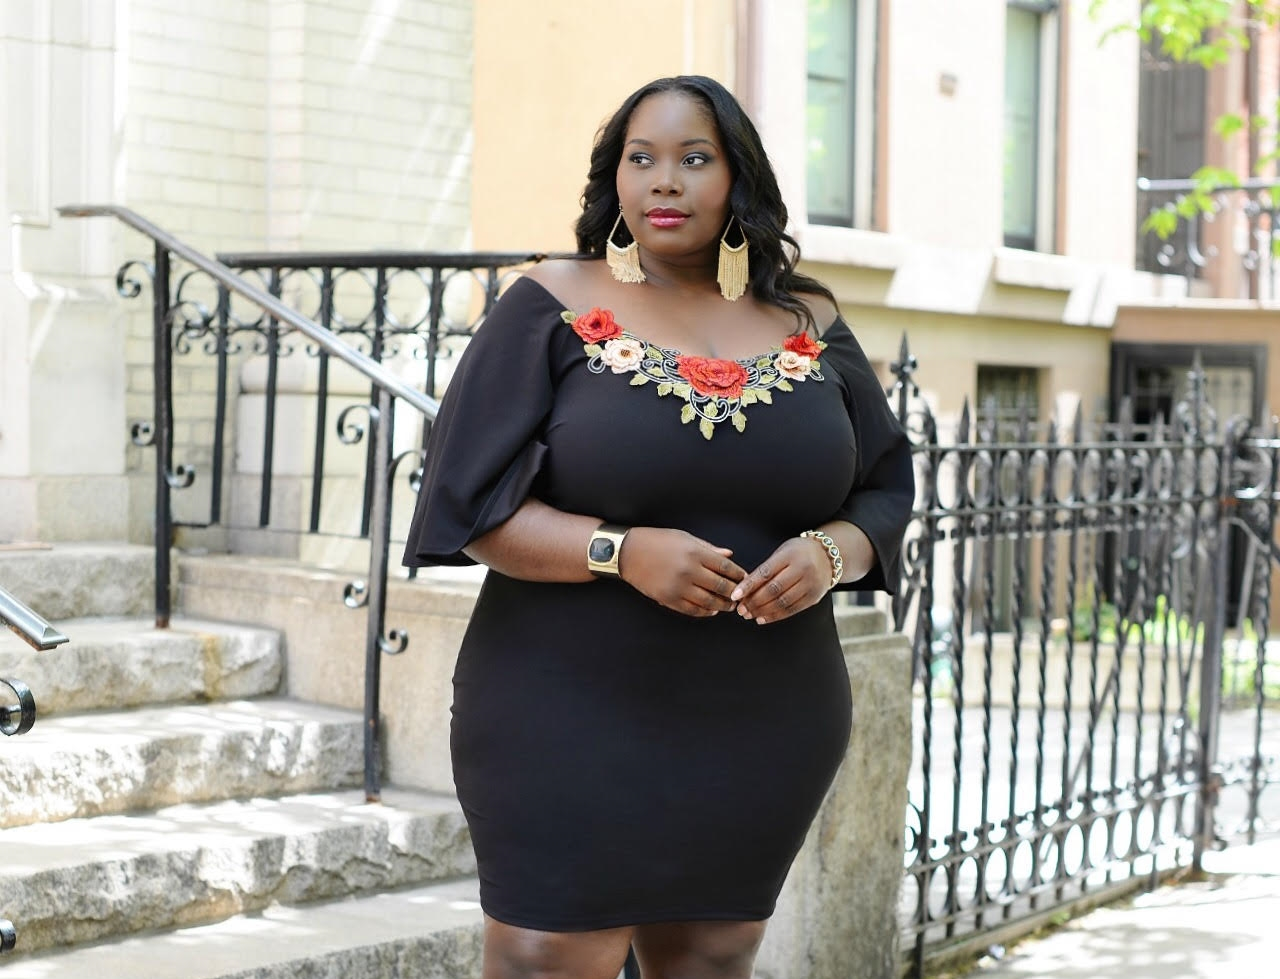 Forever 21 Plus Size Dresses Review – DACC